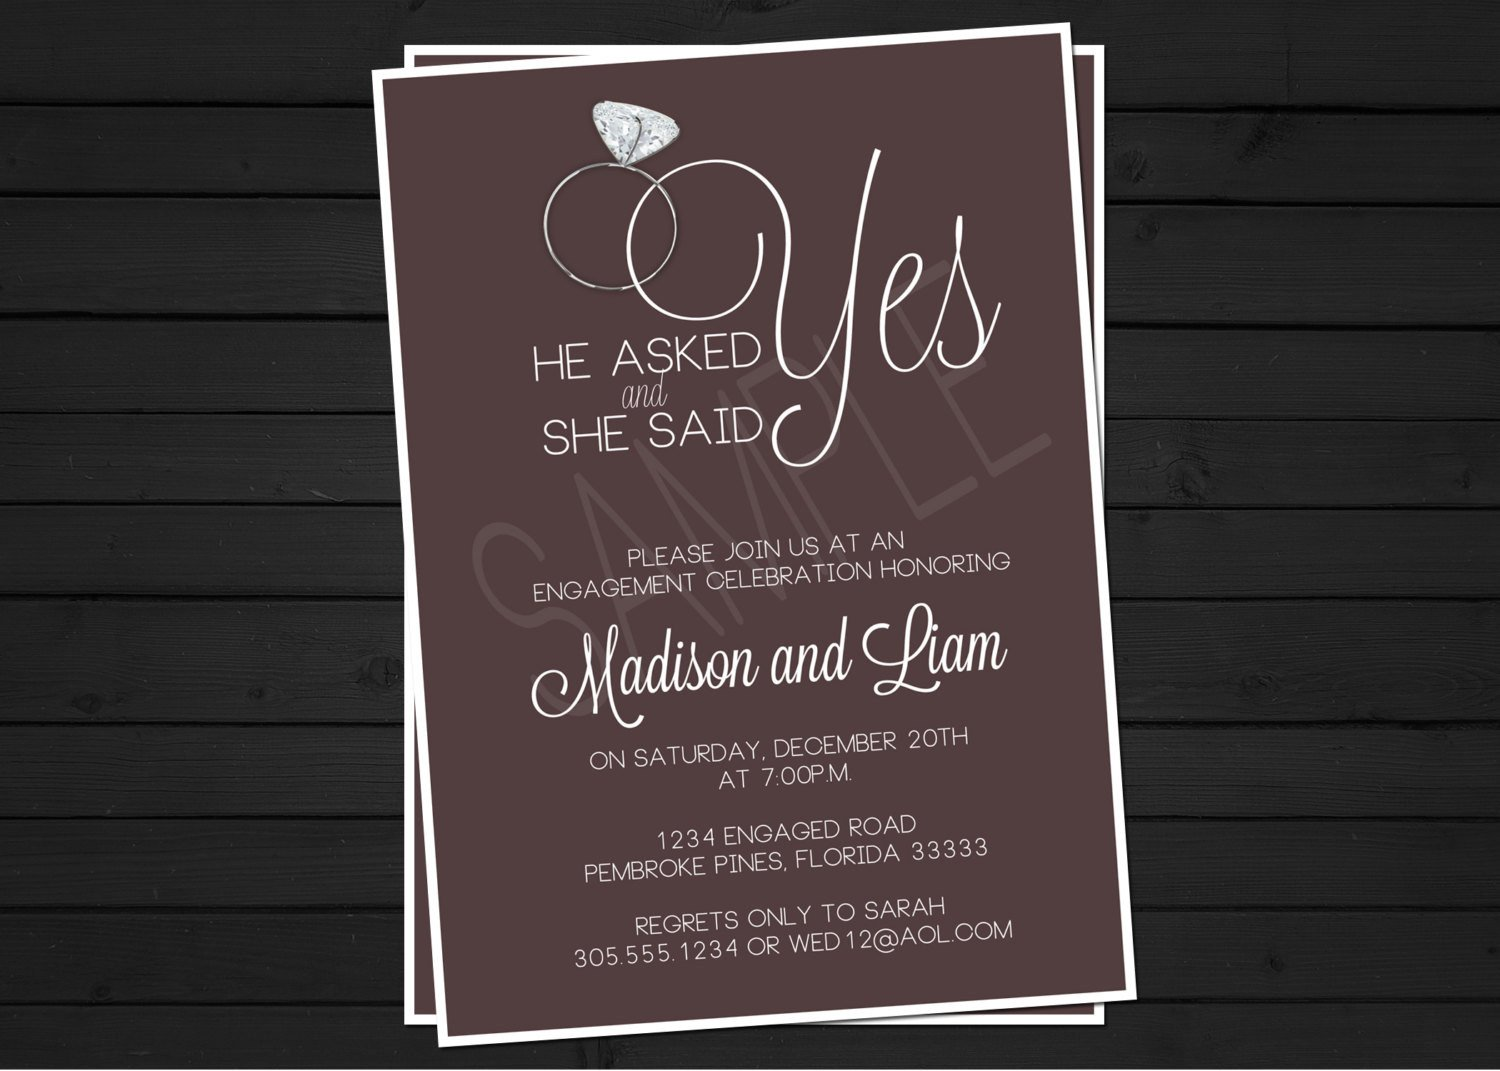 Engagement Party Invitations Templates Engagement Party Invitation Digital File by Shestutucutebtq